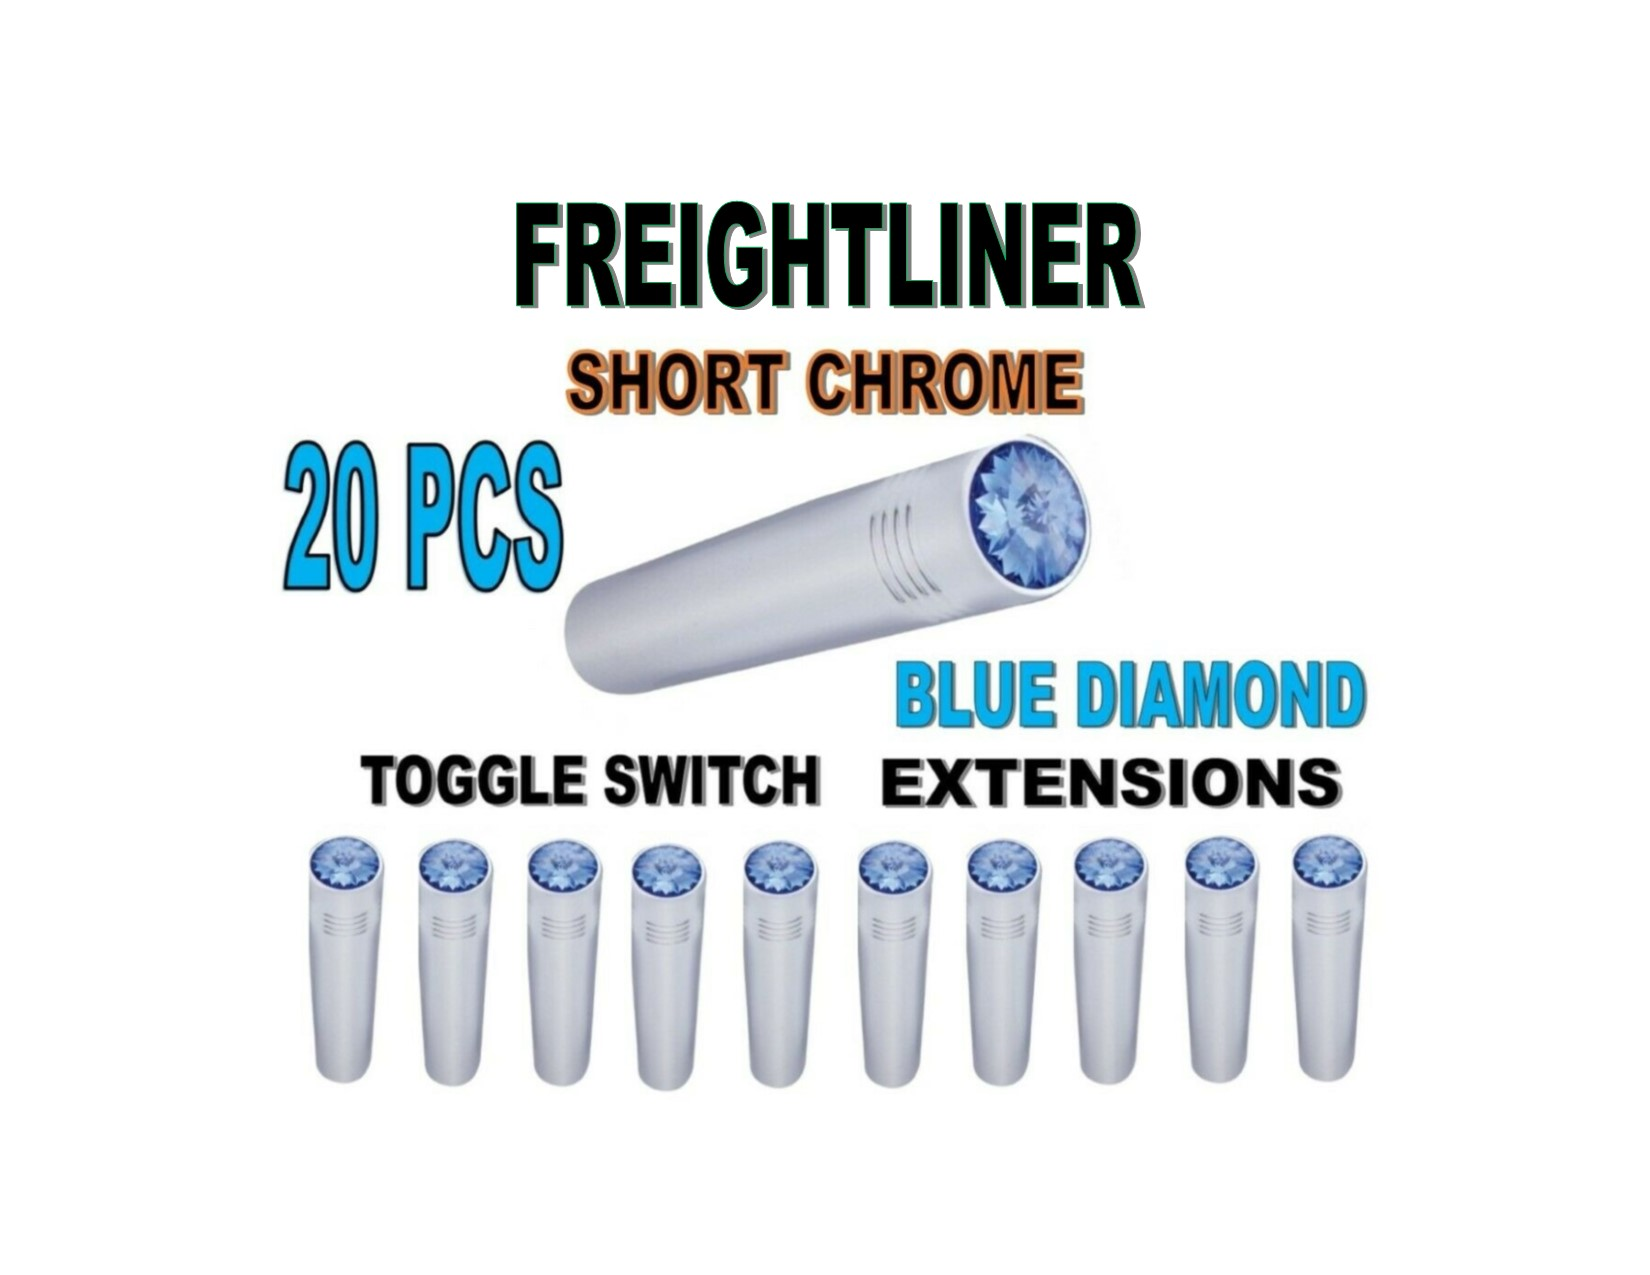 Toggle Switch Ext. Short Chrome - BLUE Diamond (X20) FREIGHTLINER